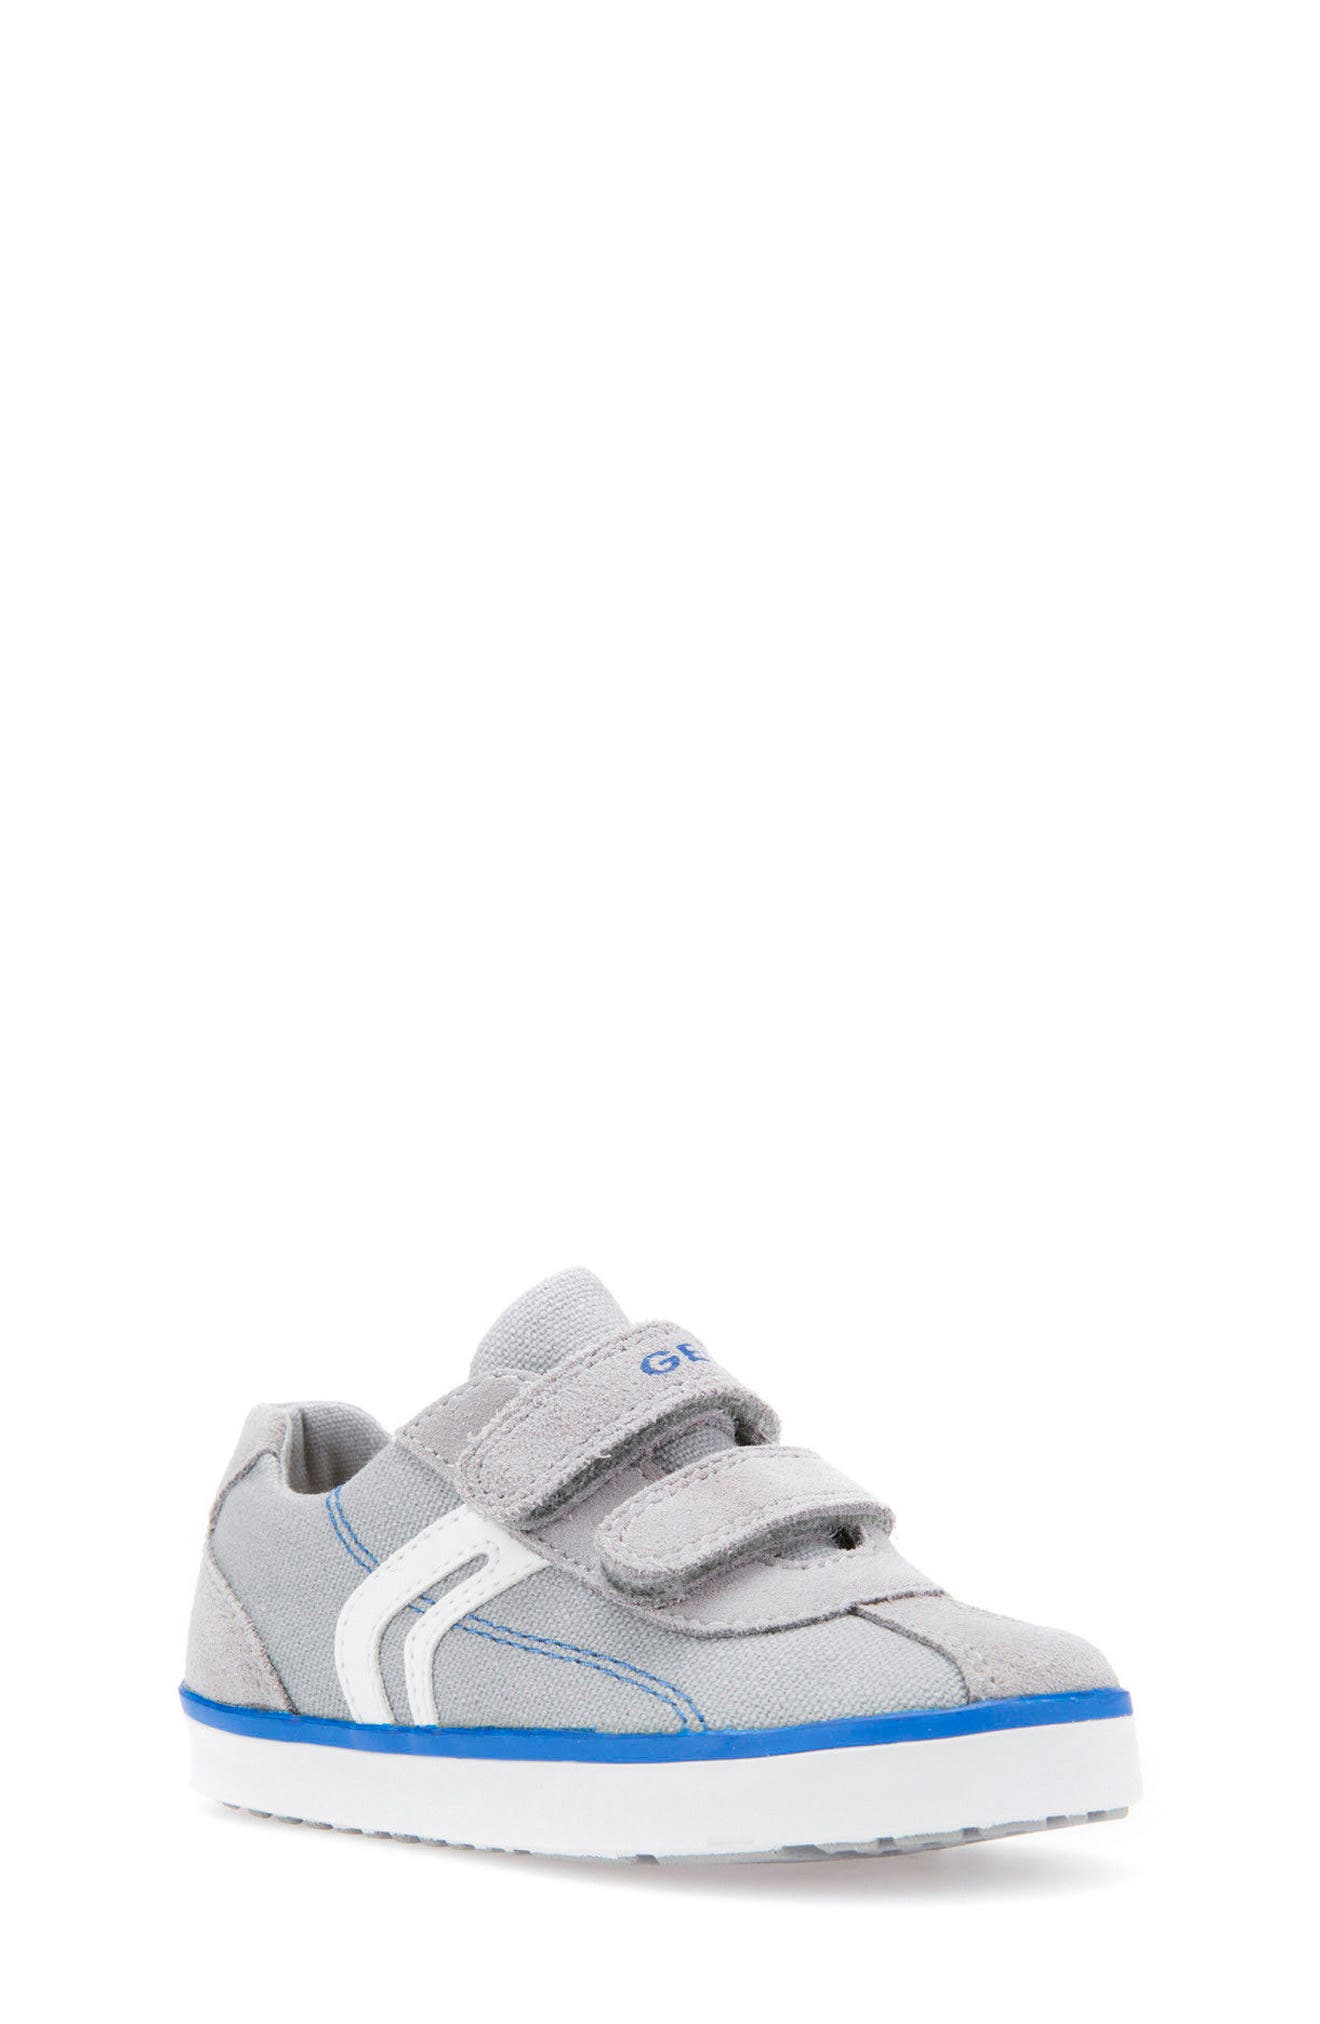 Sneakers for Women On Sale, Cyclamen, Leather, 2017, 2.5 4.5 5.5 Golden Goose